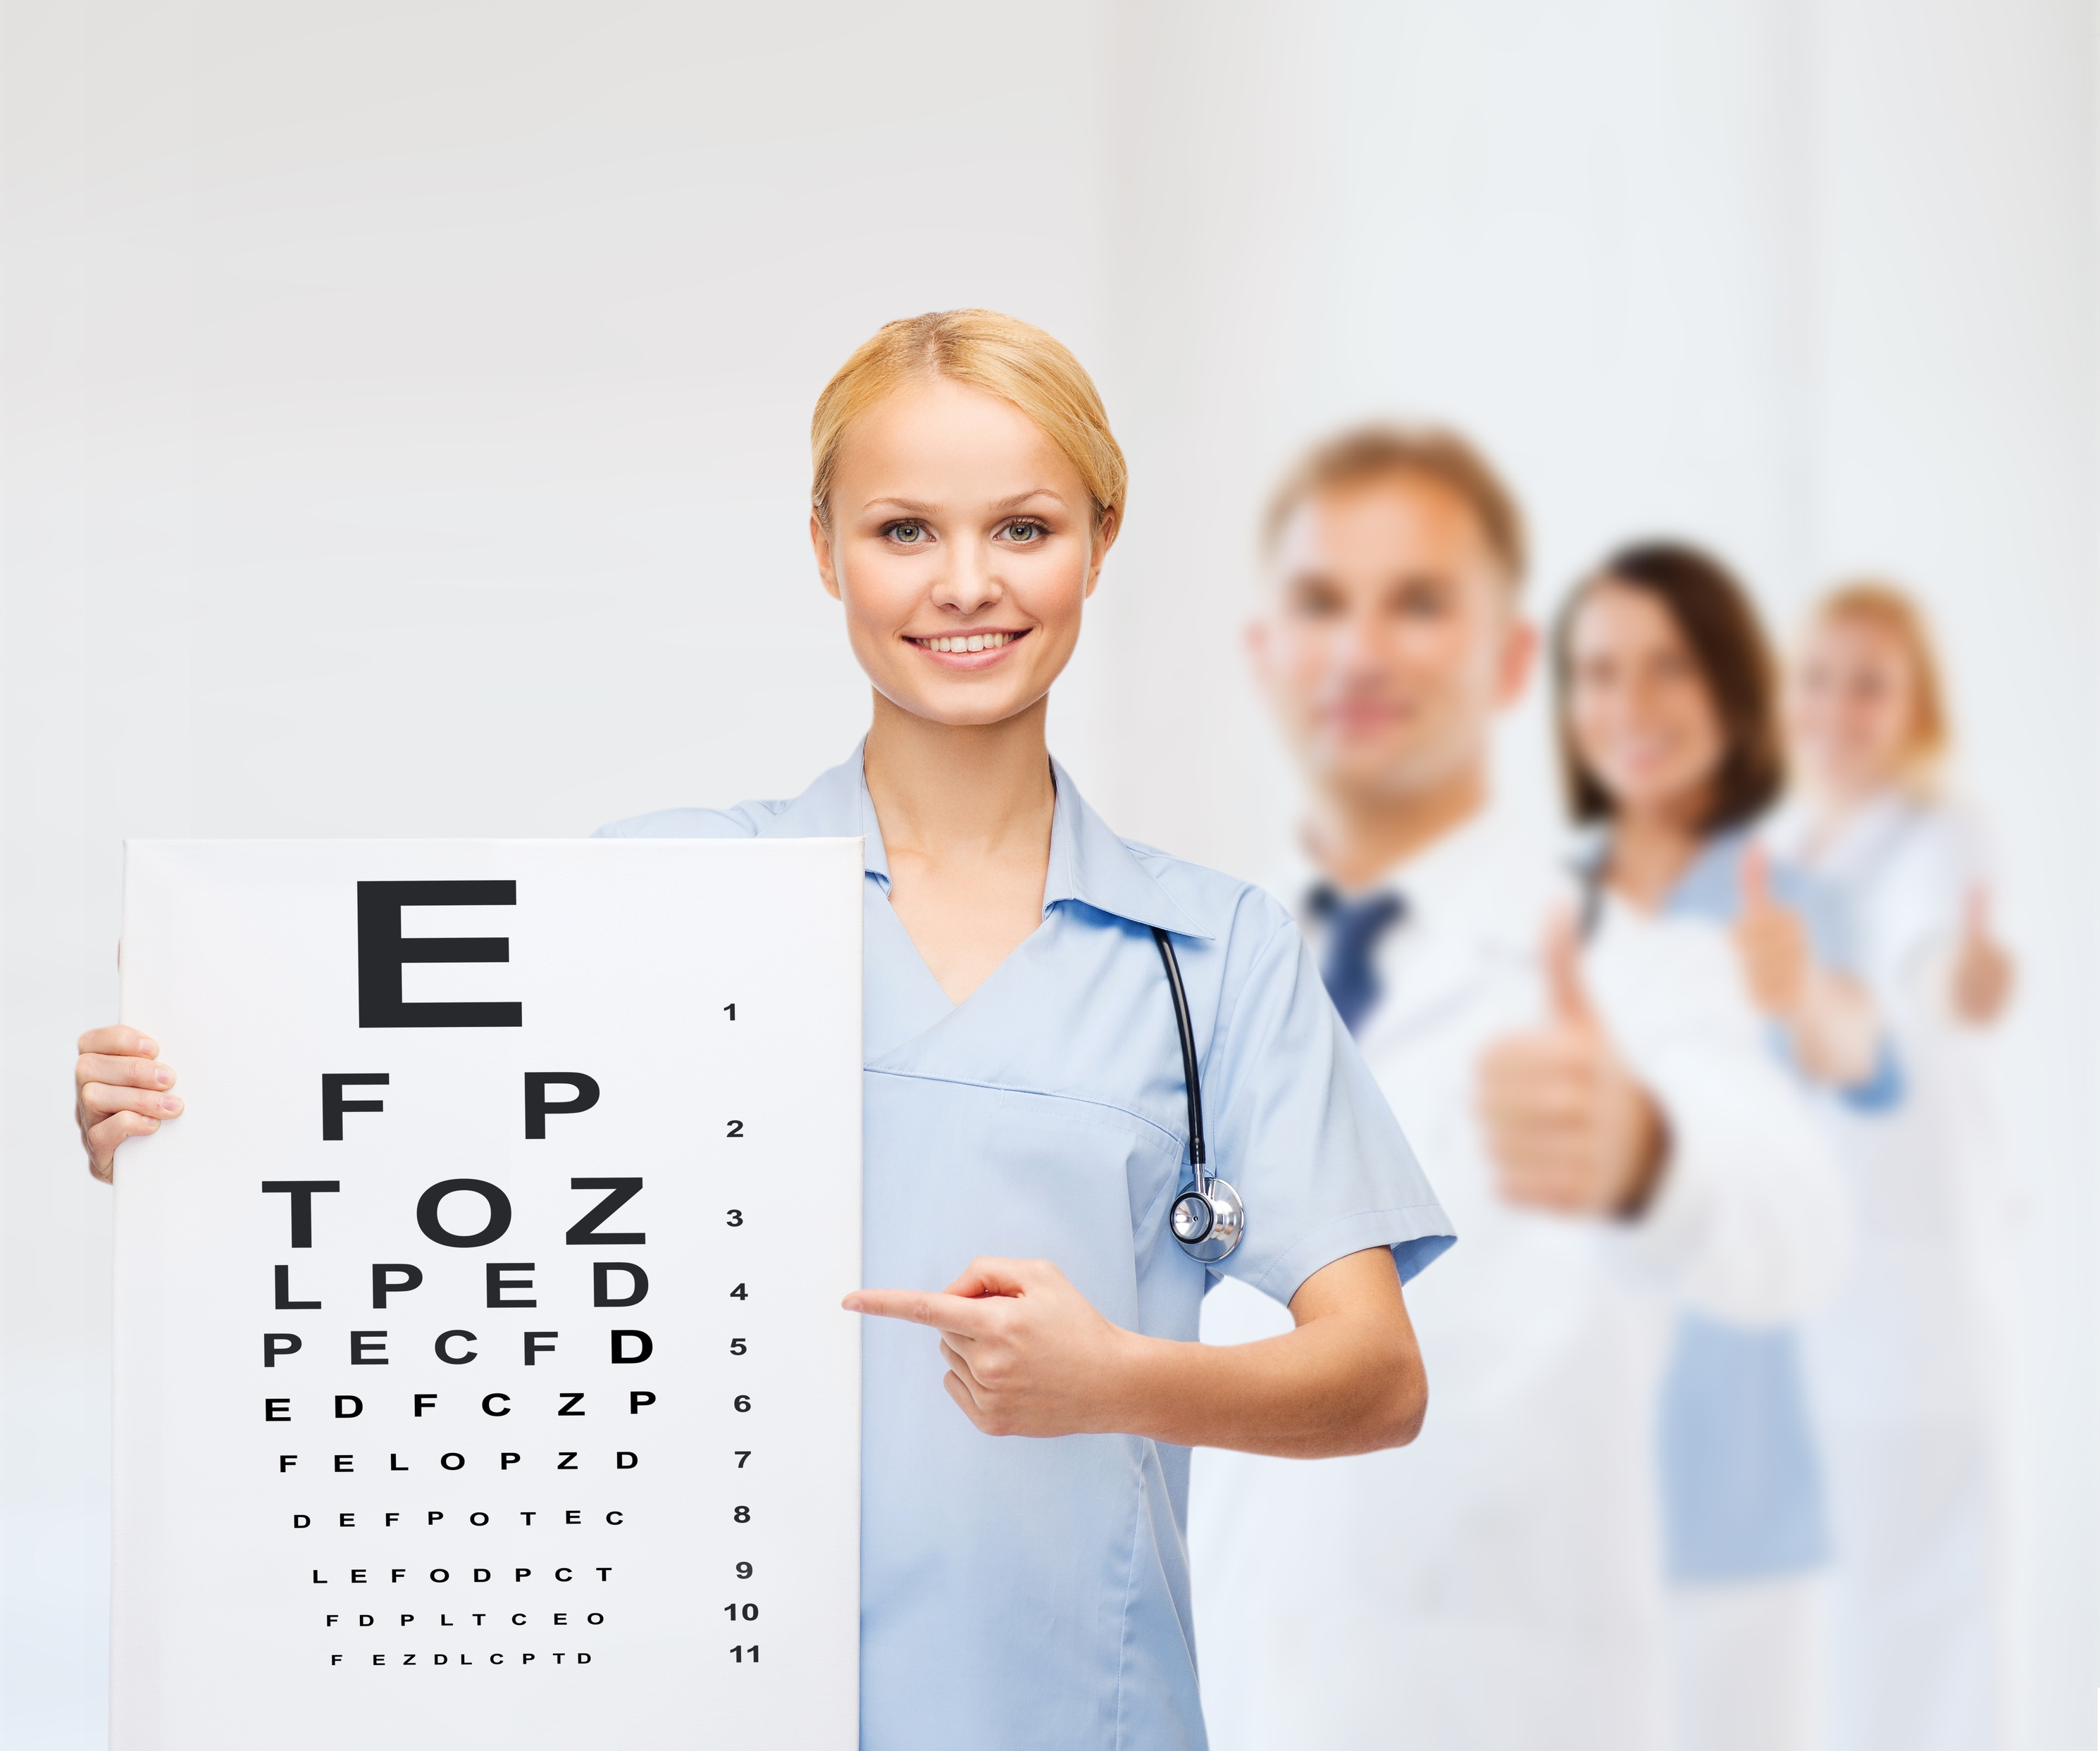 Adult Eye Care - Eye Q Optometrist (New York Orthokeratologist)